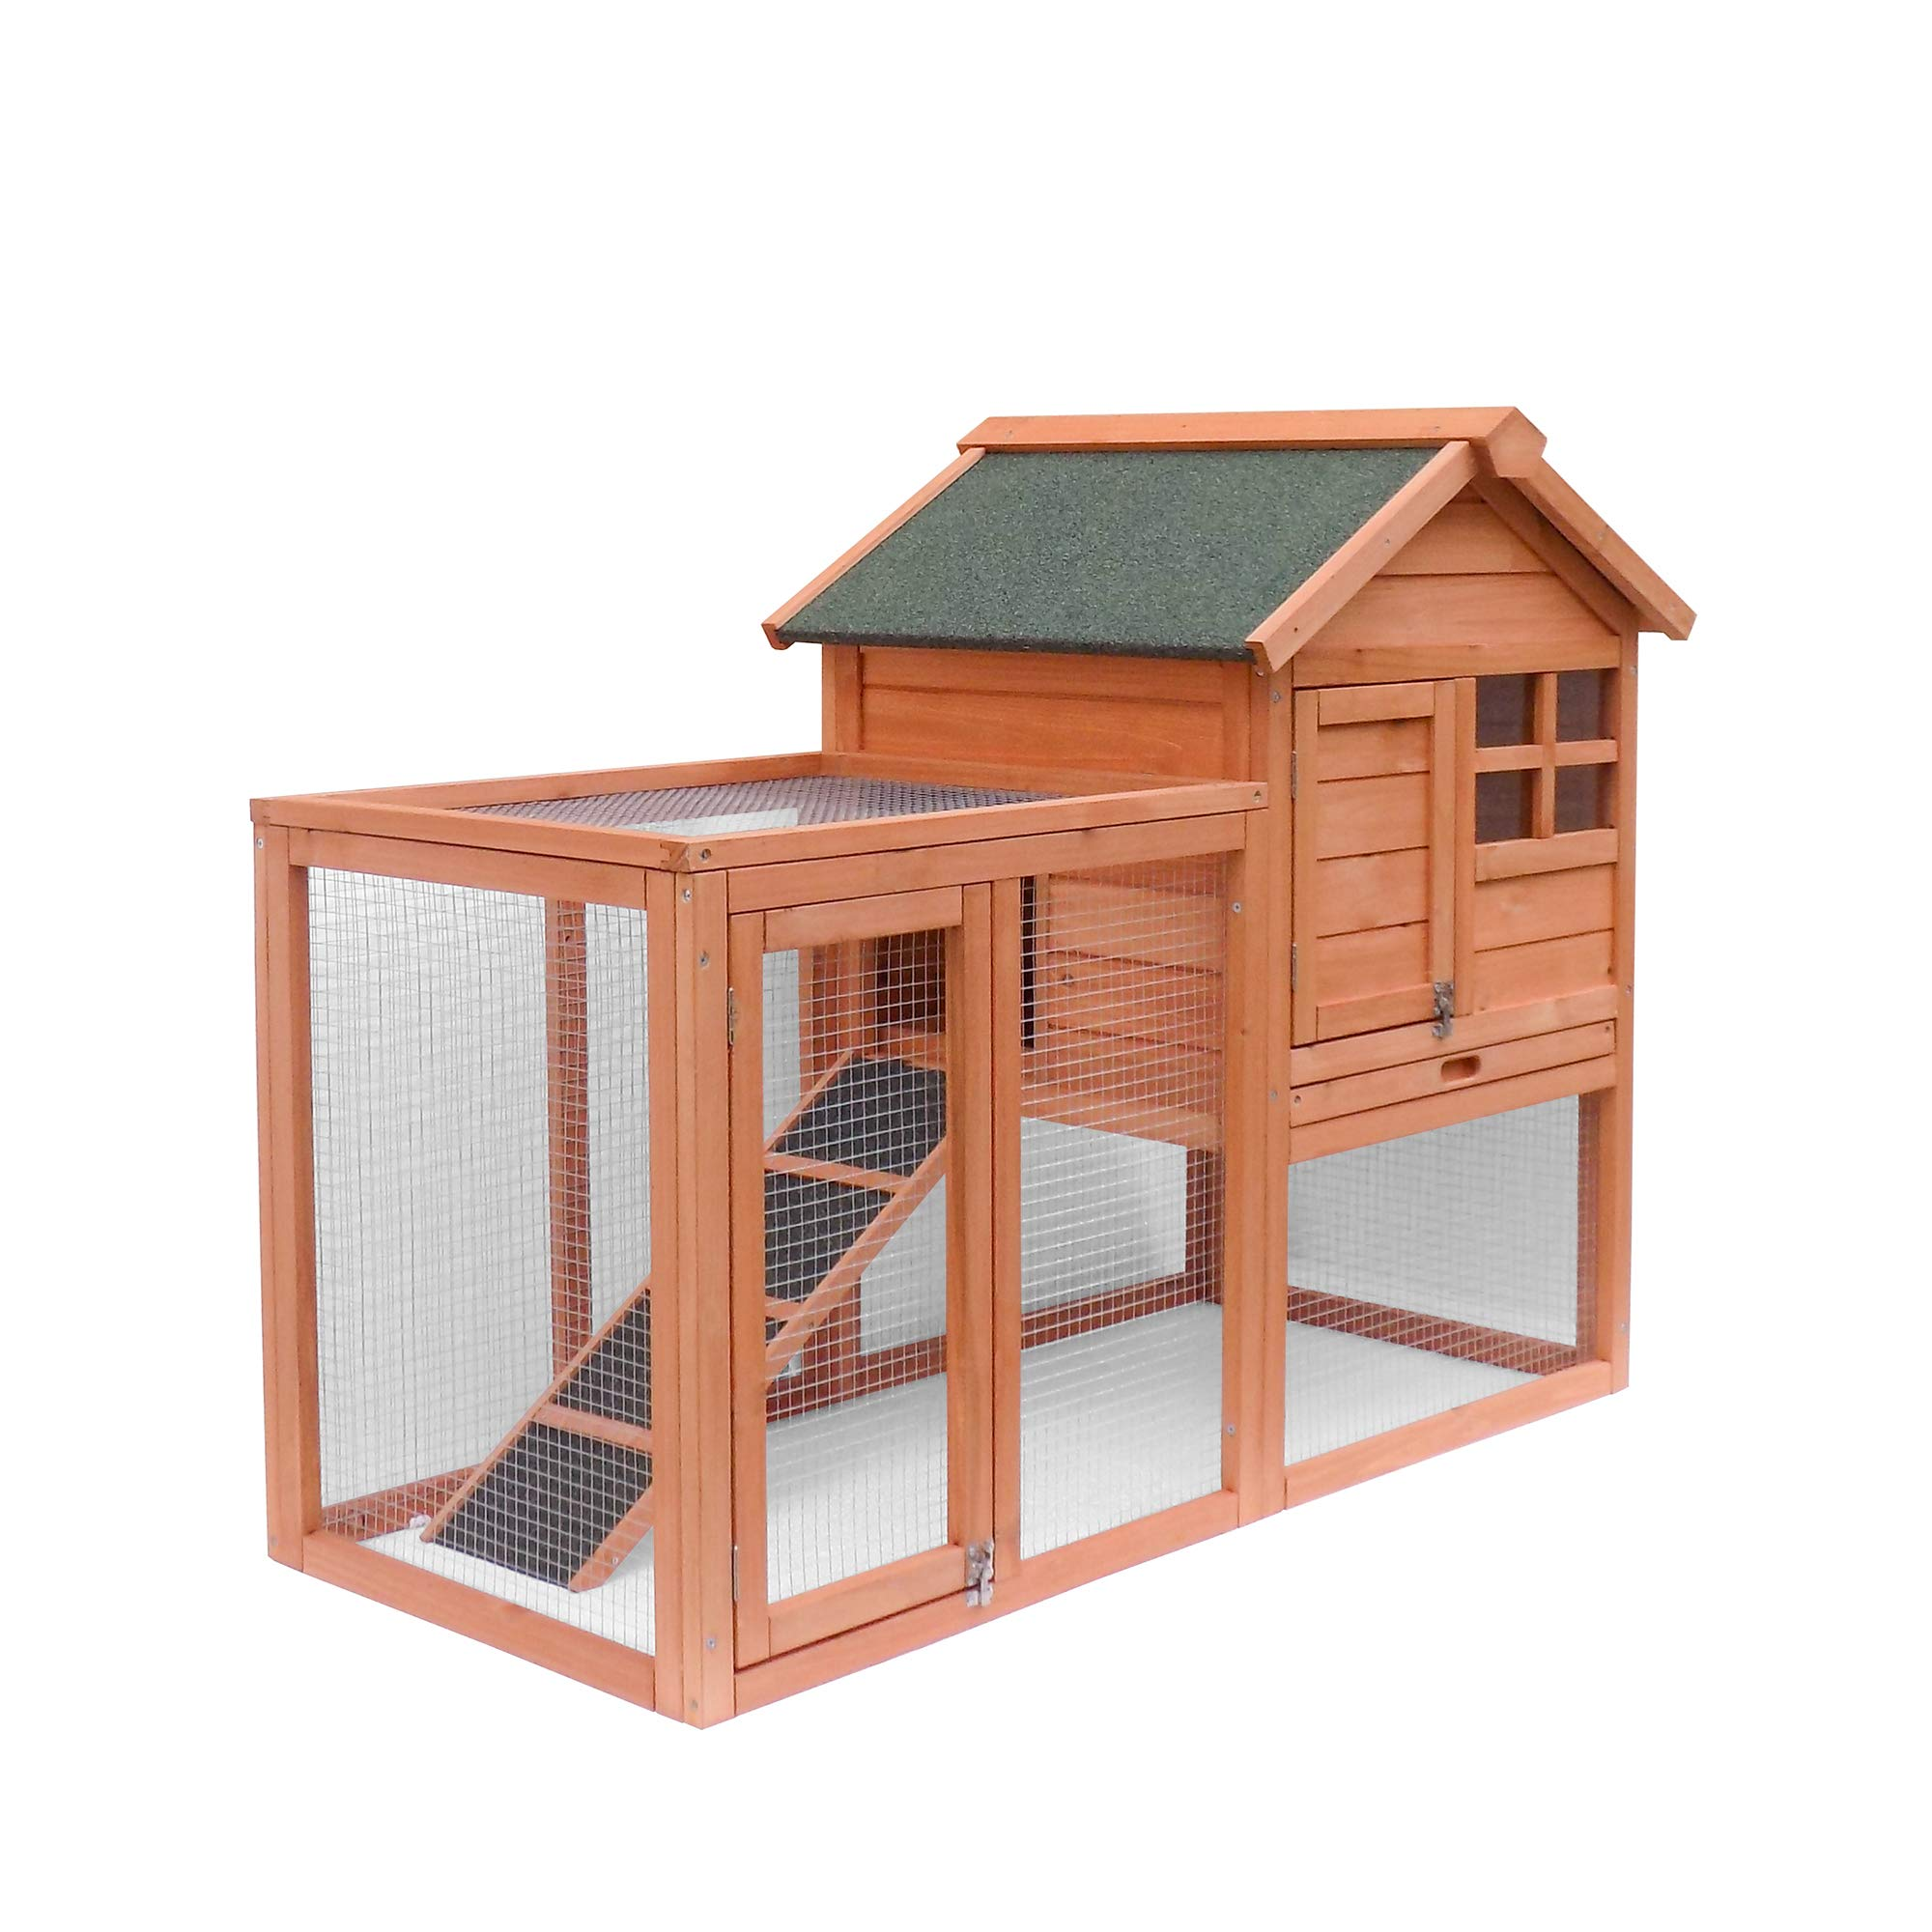 Rhomtree Wooden Pet House Large Chicken Coop Wood Outdoor Garden Backyard Hen House Rabbit Hutch Small Animal Cage (Rabbit Hutch 2)